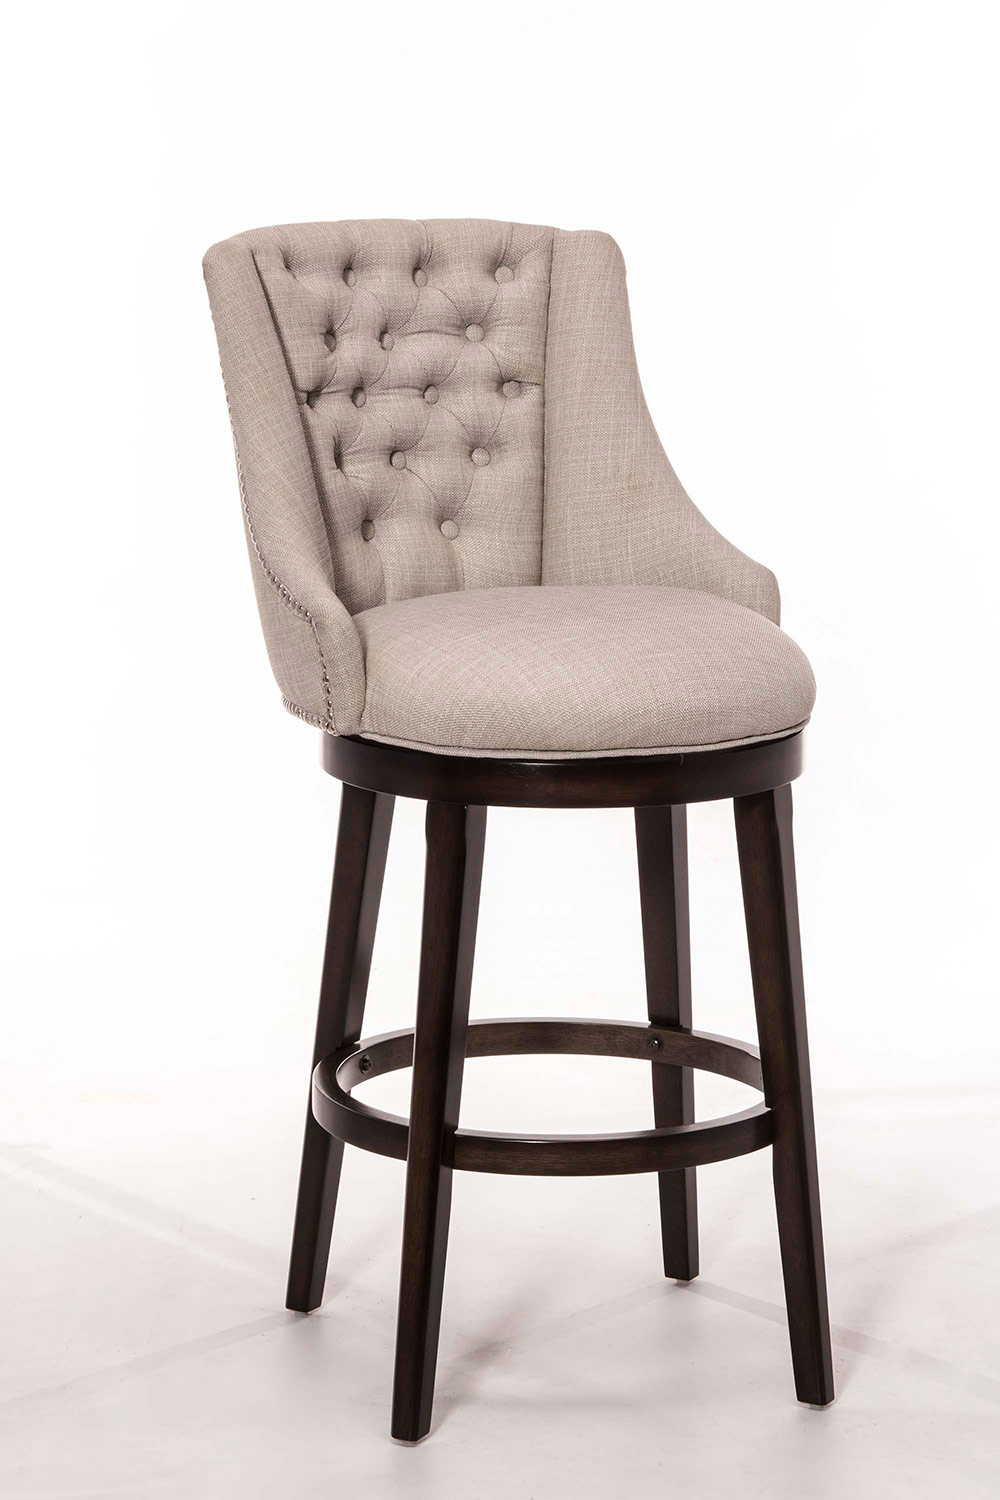 Hillsdale Halbrooke Swivel Bar Stool - Chocolate